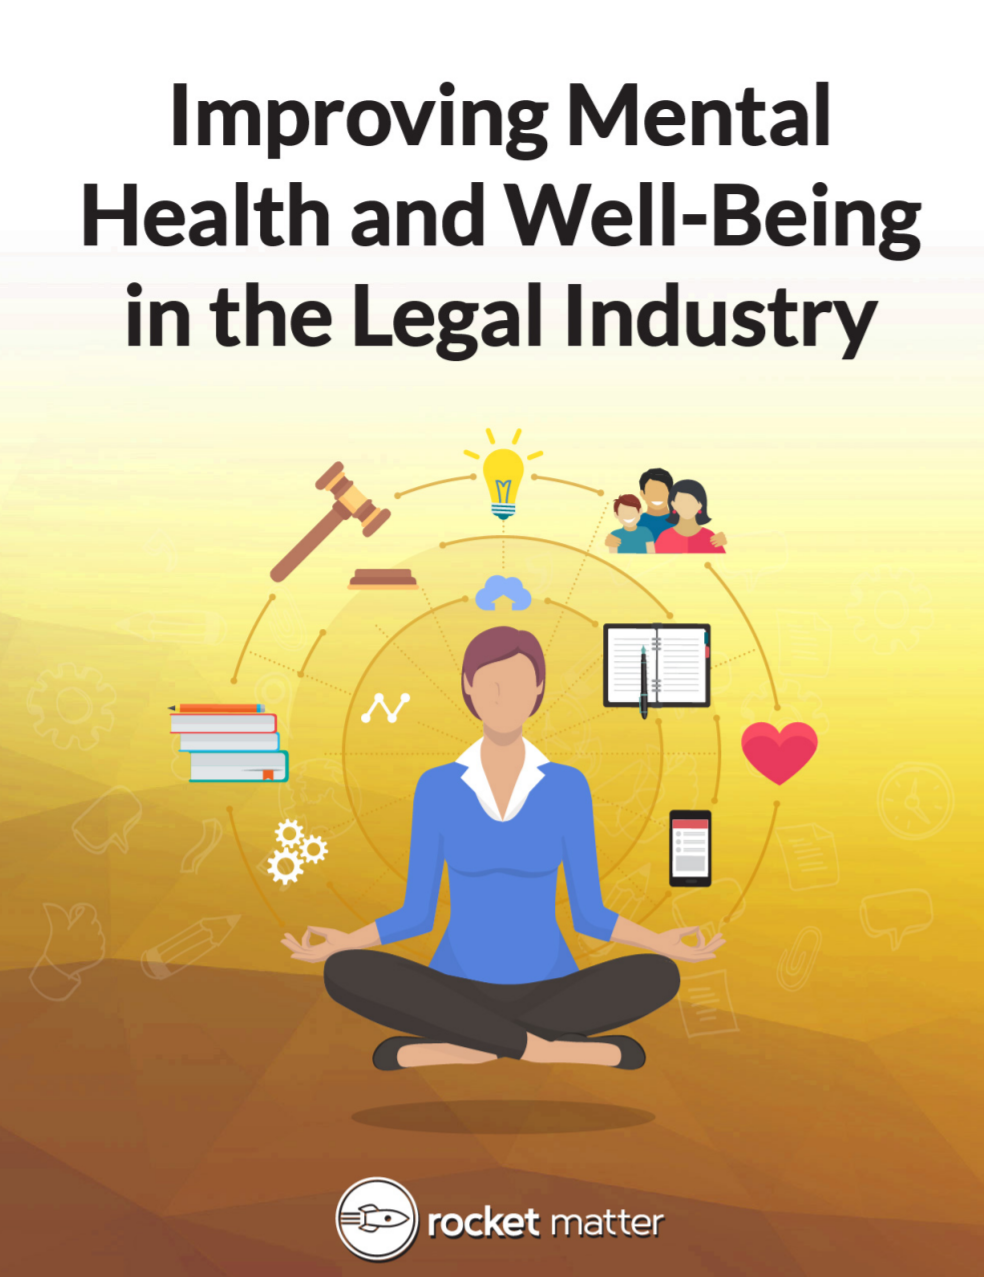 Improving Mental Health and Well-Being in the Legal Industry